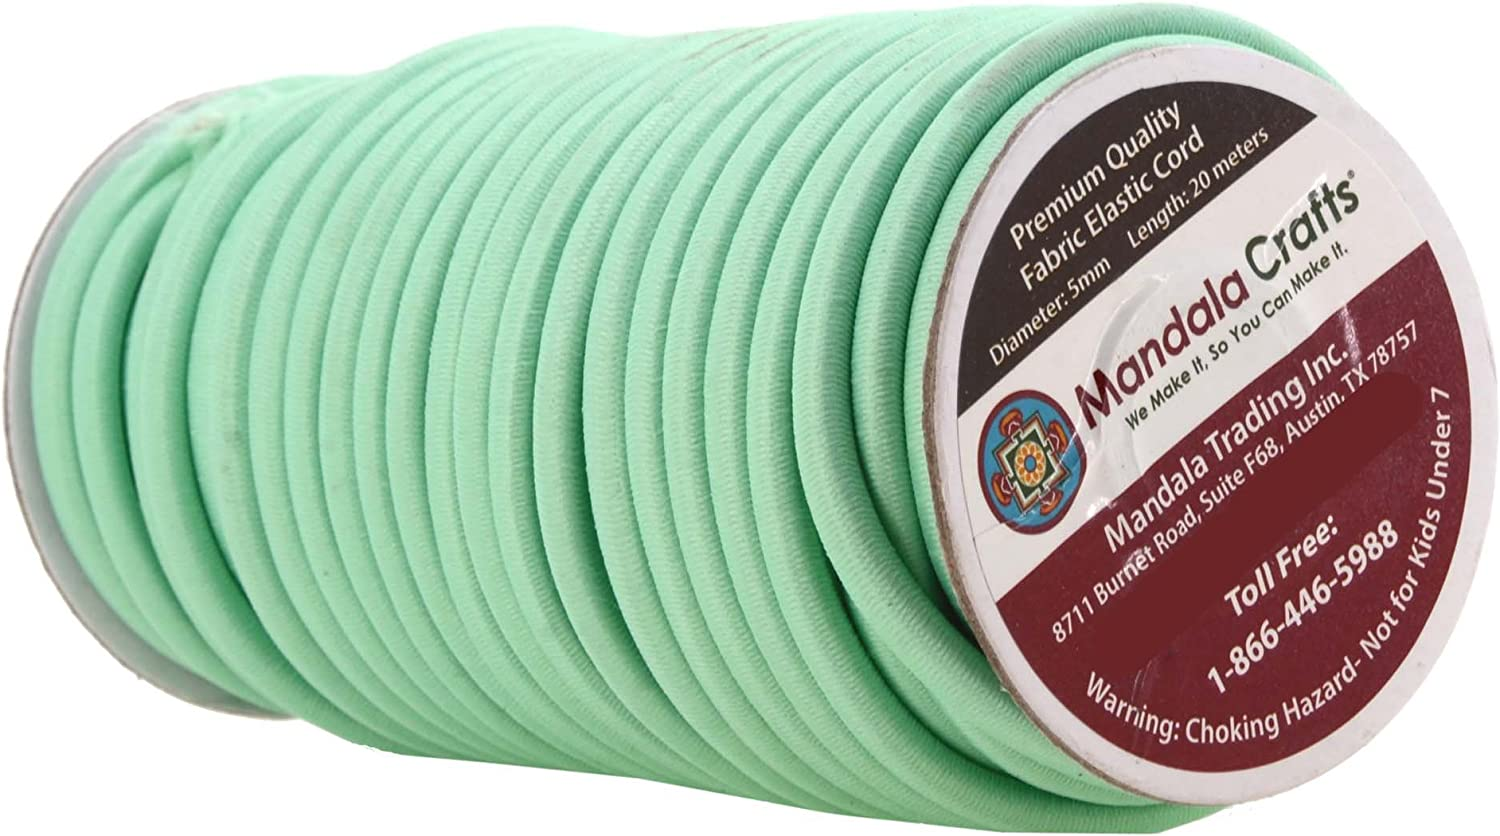 Backpacks Elastic Bungee Rope Shock Cord for Kayaks Turquoise Bungee Cord by the Foot Tent Poles; 3//16 Inch 5MM 65 FT Roll by Mandala Crafts